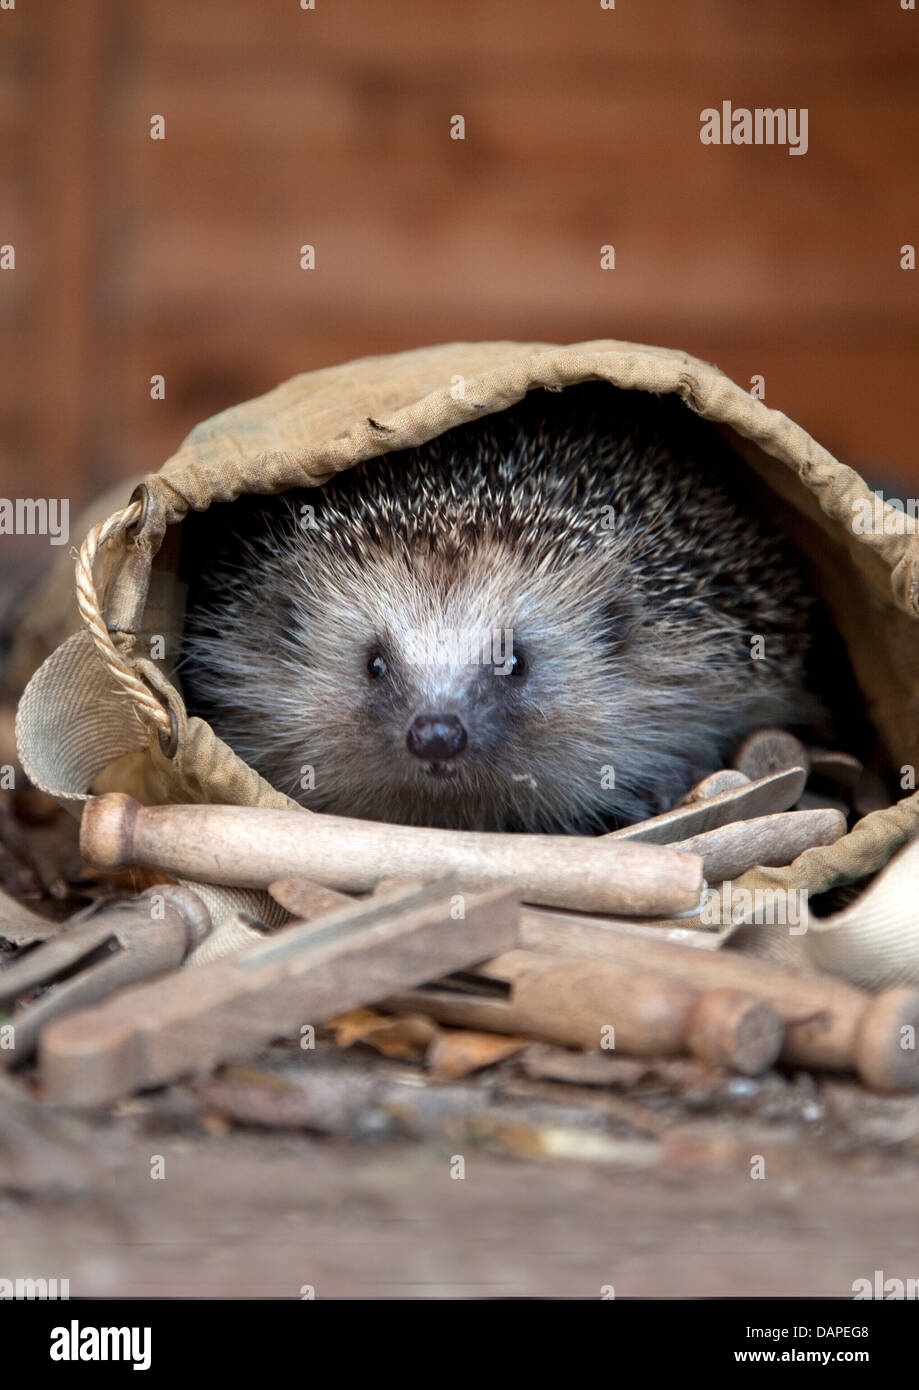 European hedgehog in garden Stock Photo